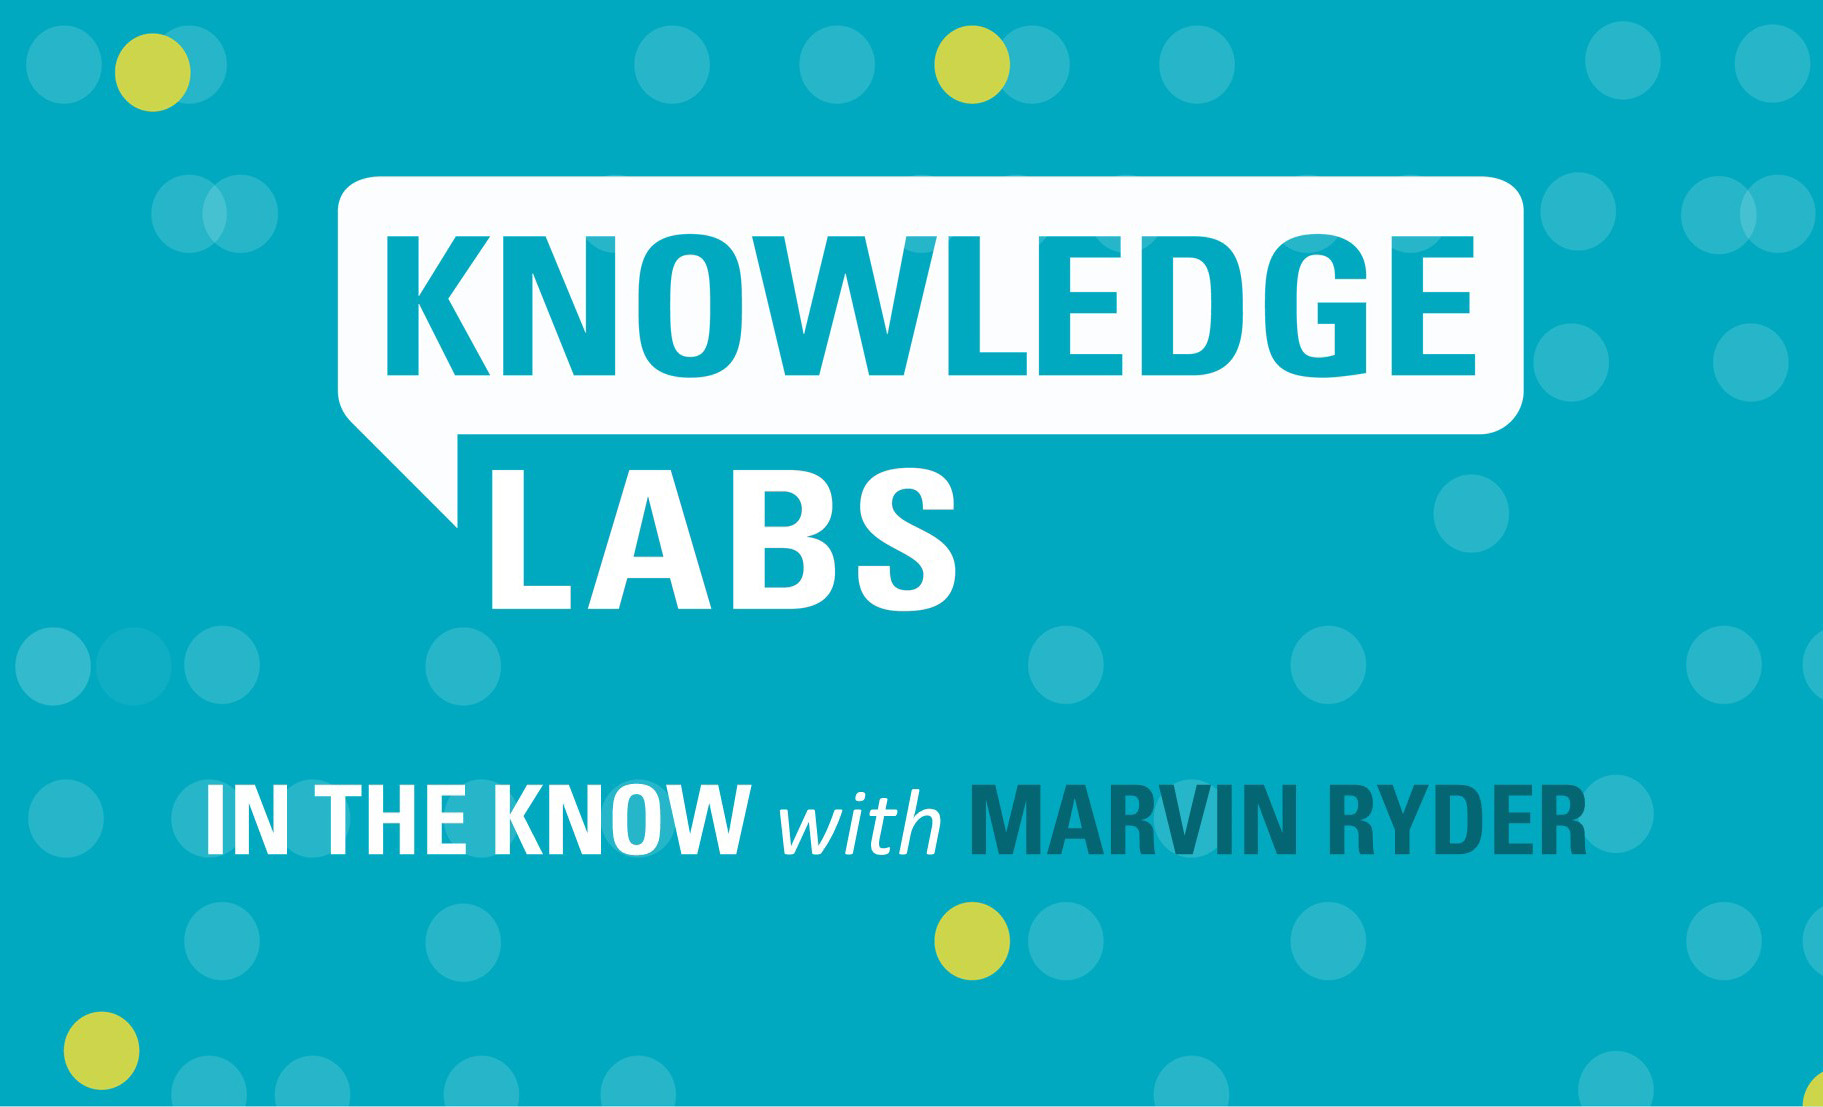 In the Know with Marvin Ryder